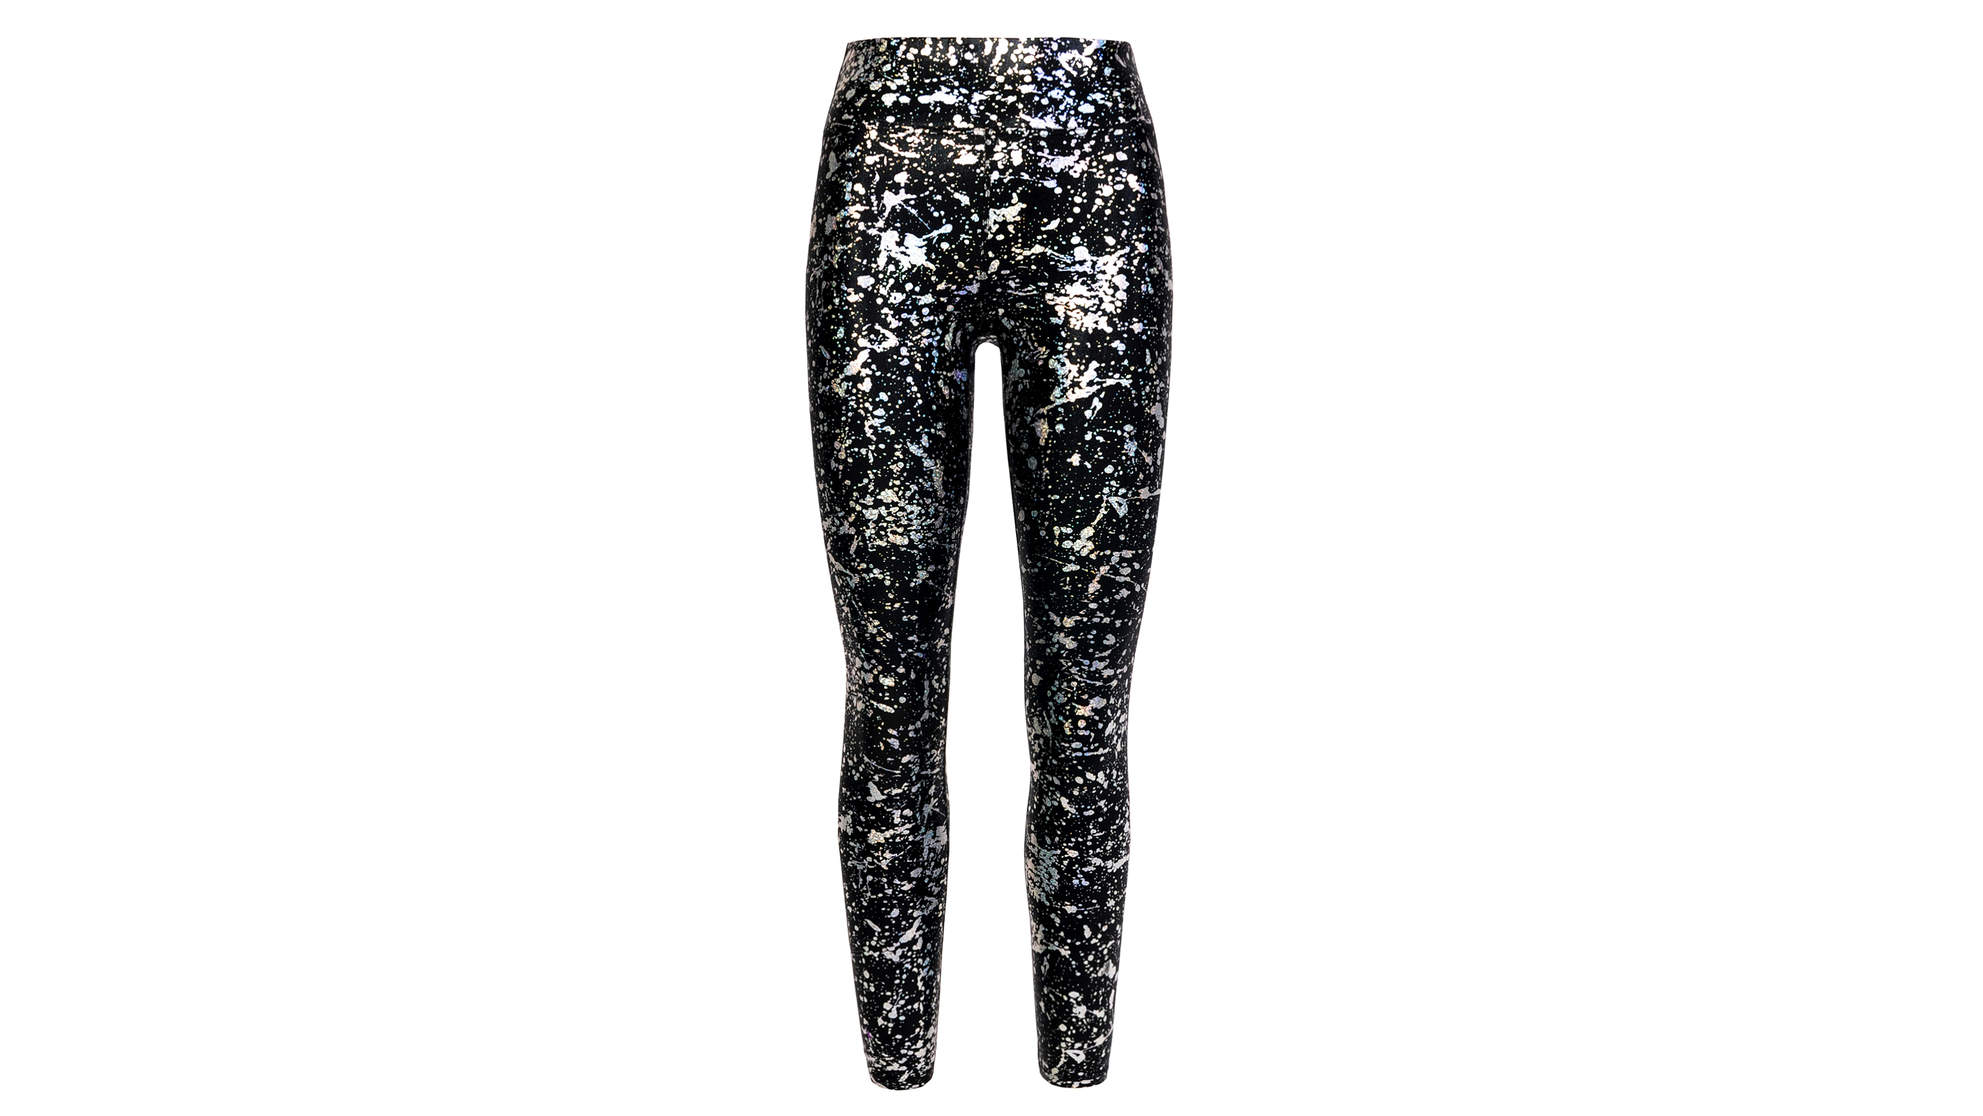 sportx-tracy-anderson-splash-legging